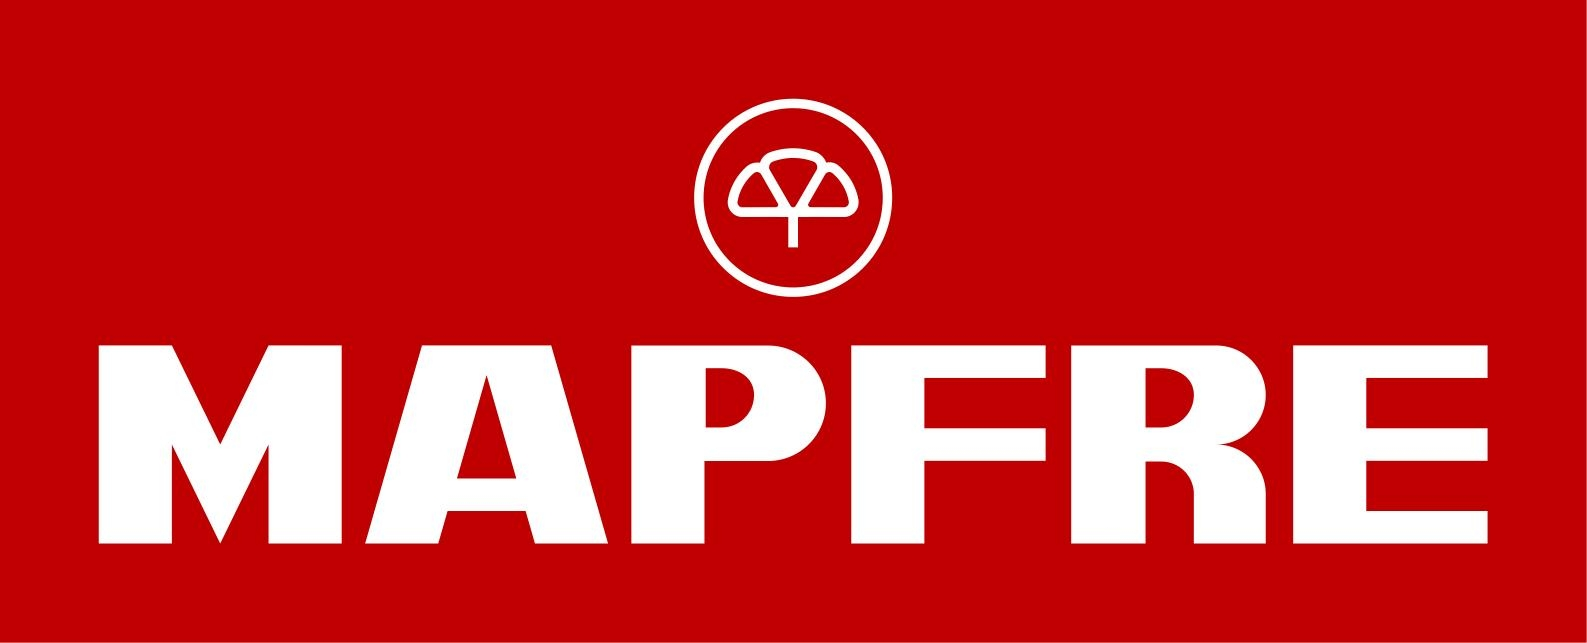 Mapfre Familiar, S.A.